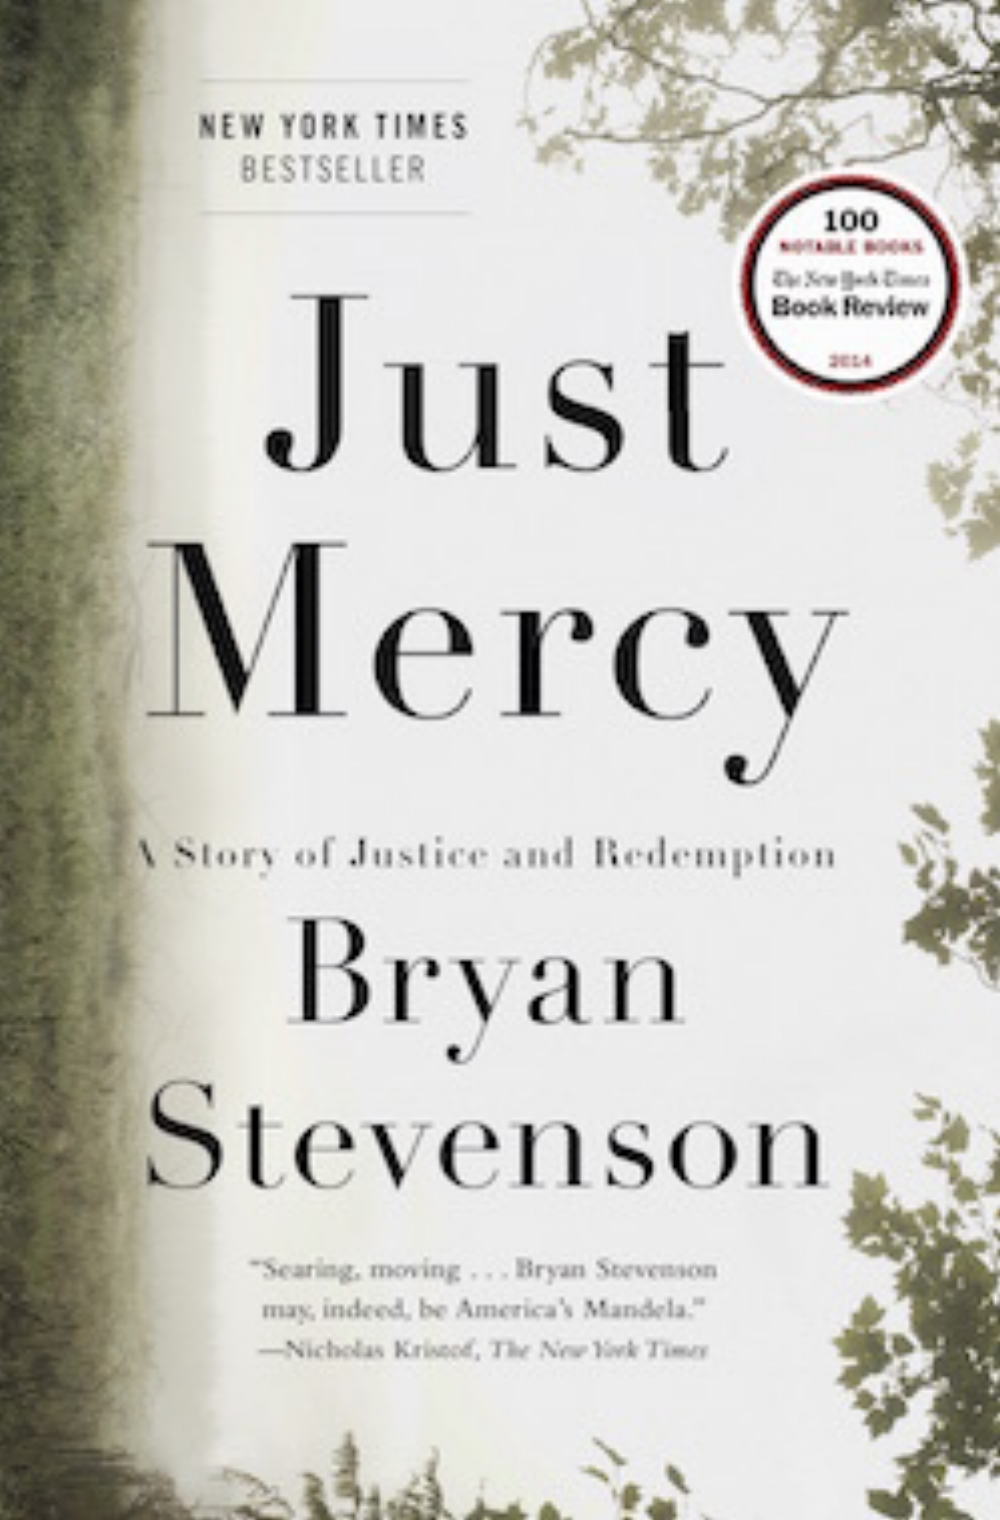 For a Great Place to Start. - Bryan Stevenson and everyone over at the Equal Justice Initiative in Montgomery, AL are doing amazing things. This book helped put them (and Bryan Stevenson) on the national map, and since then they've opened the first memorial for lynching victims in America, the National Memorial for Peace and Justice.This is a wonderful book to begin thinking about racial justice and the Christian faith. Written with mercy truly at its core, Stevenson patiently walks the reader through the darkness of racialized society and into the hope he's fighting towards.Penguin Random House (2014)